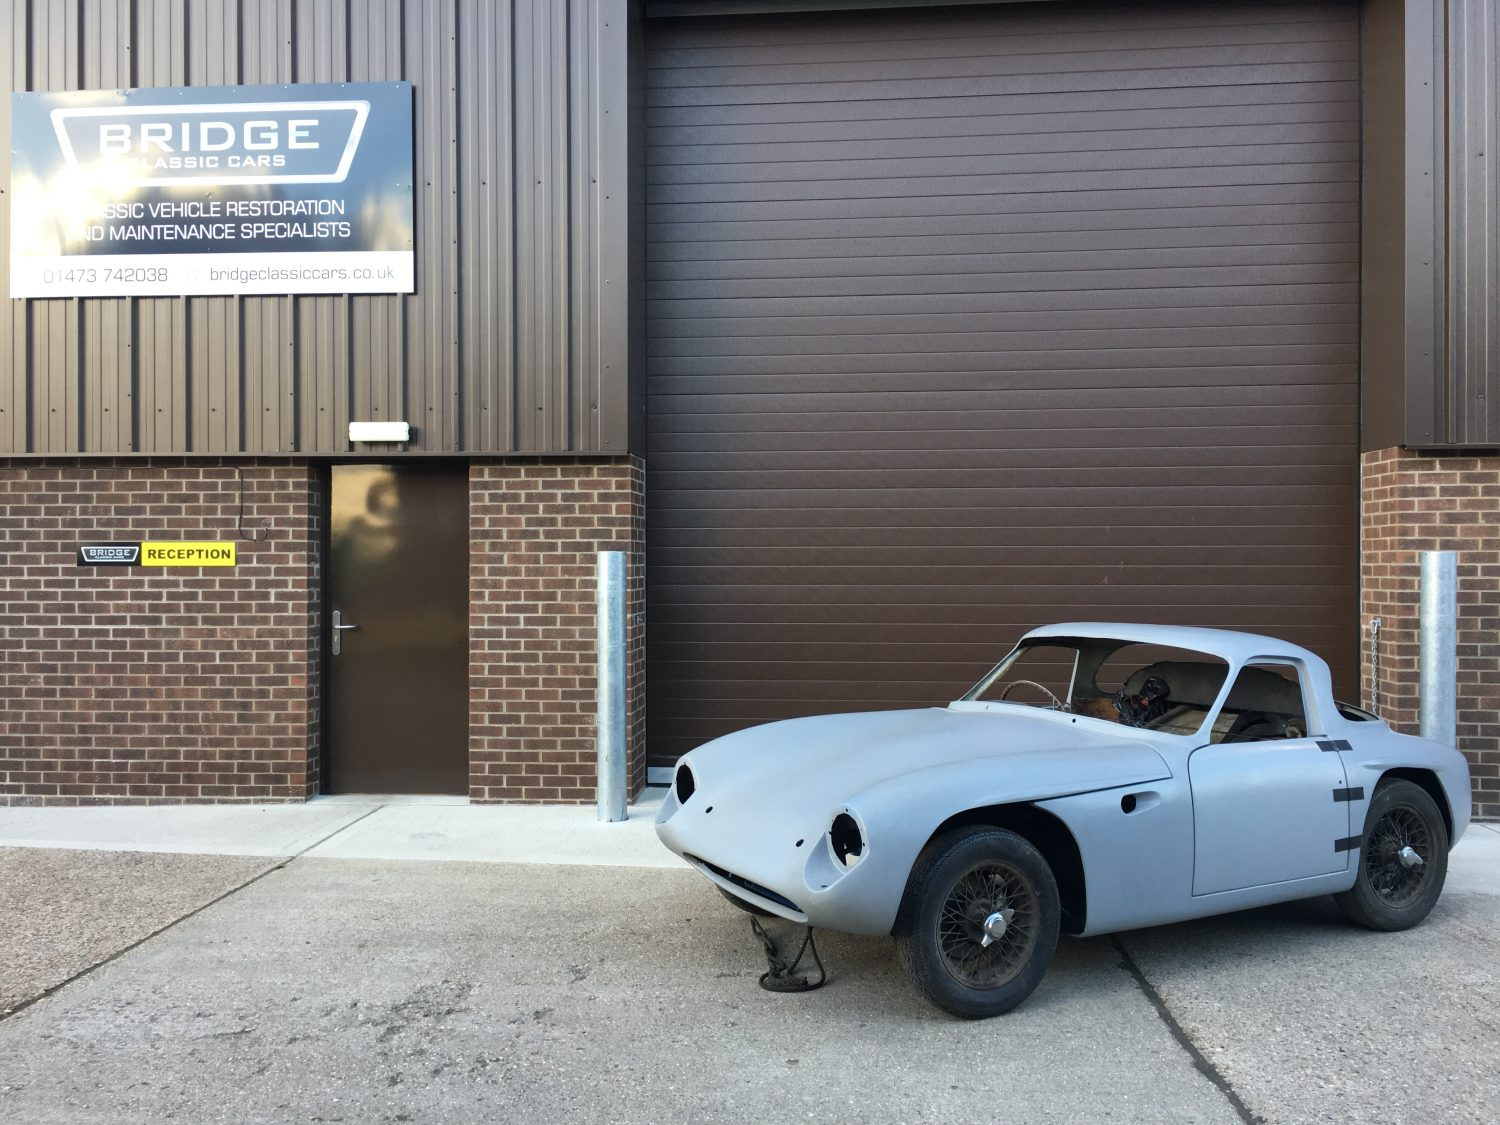 TVR Grantura bodyshell arrives at Bridge Classic Cars